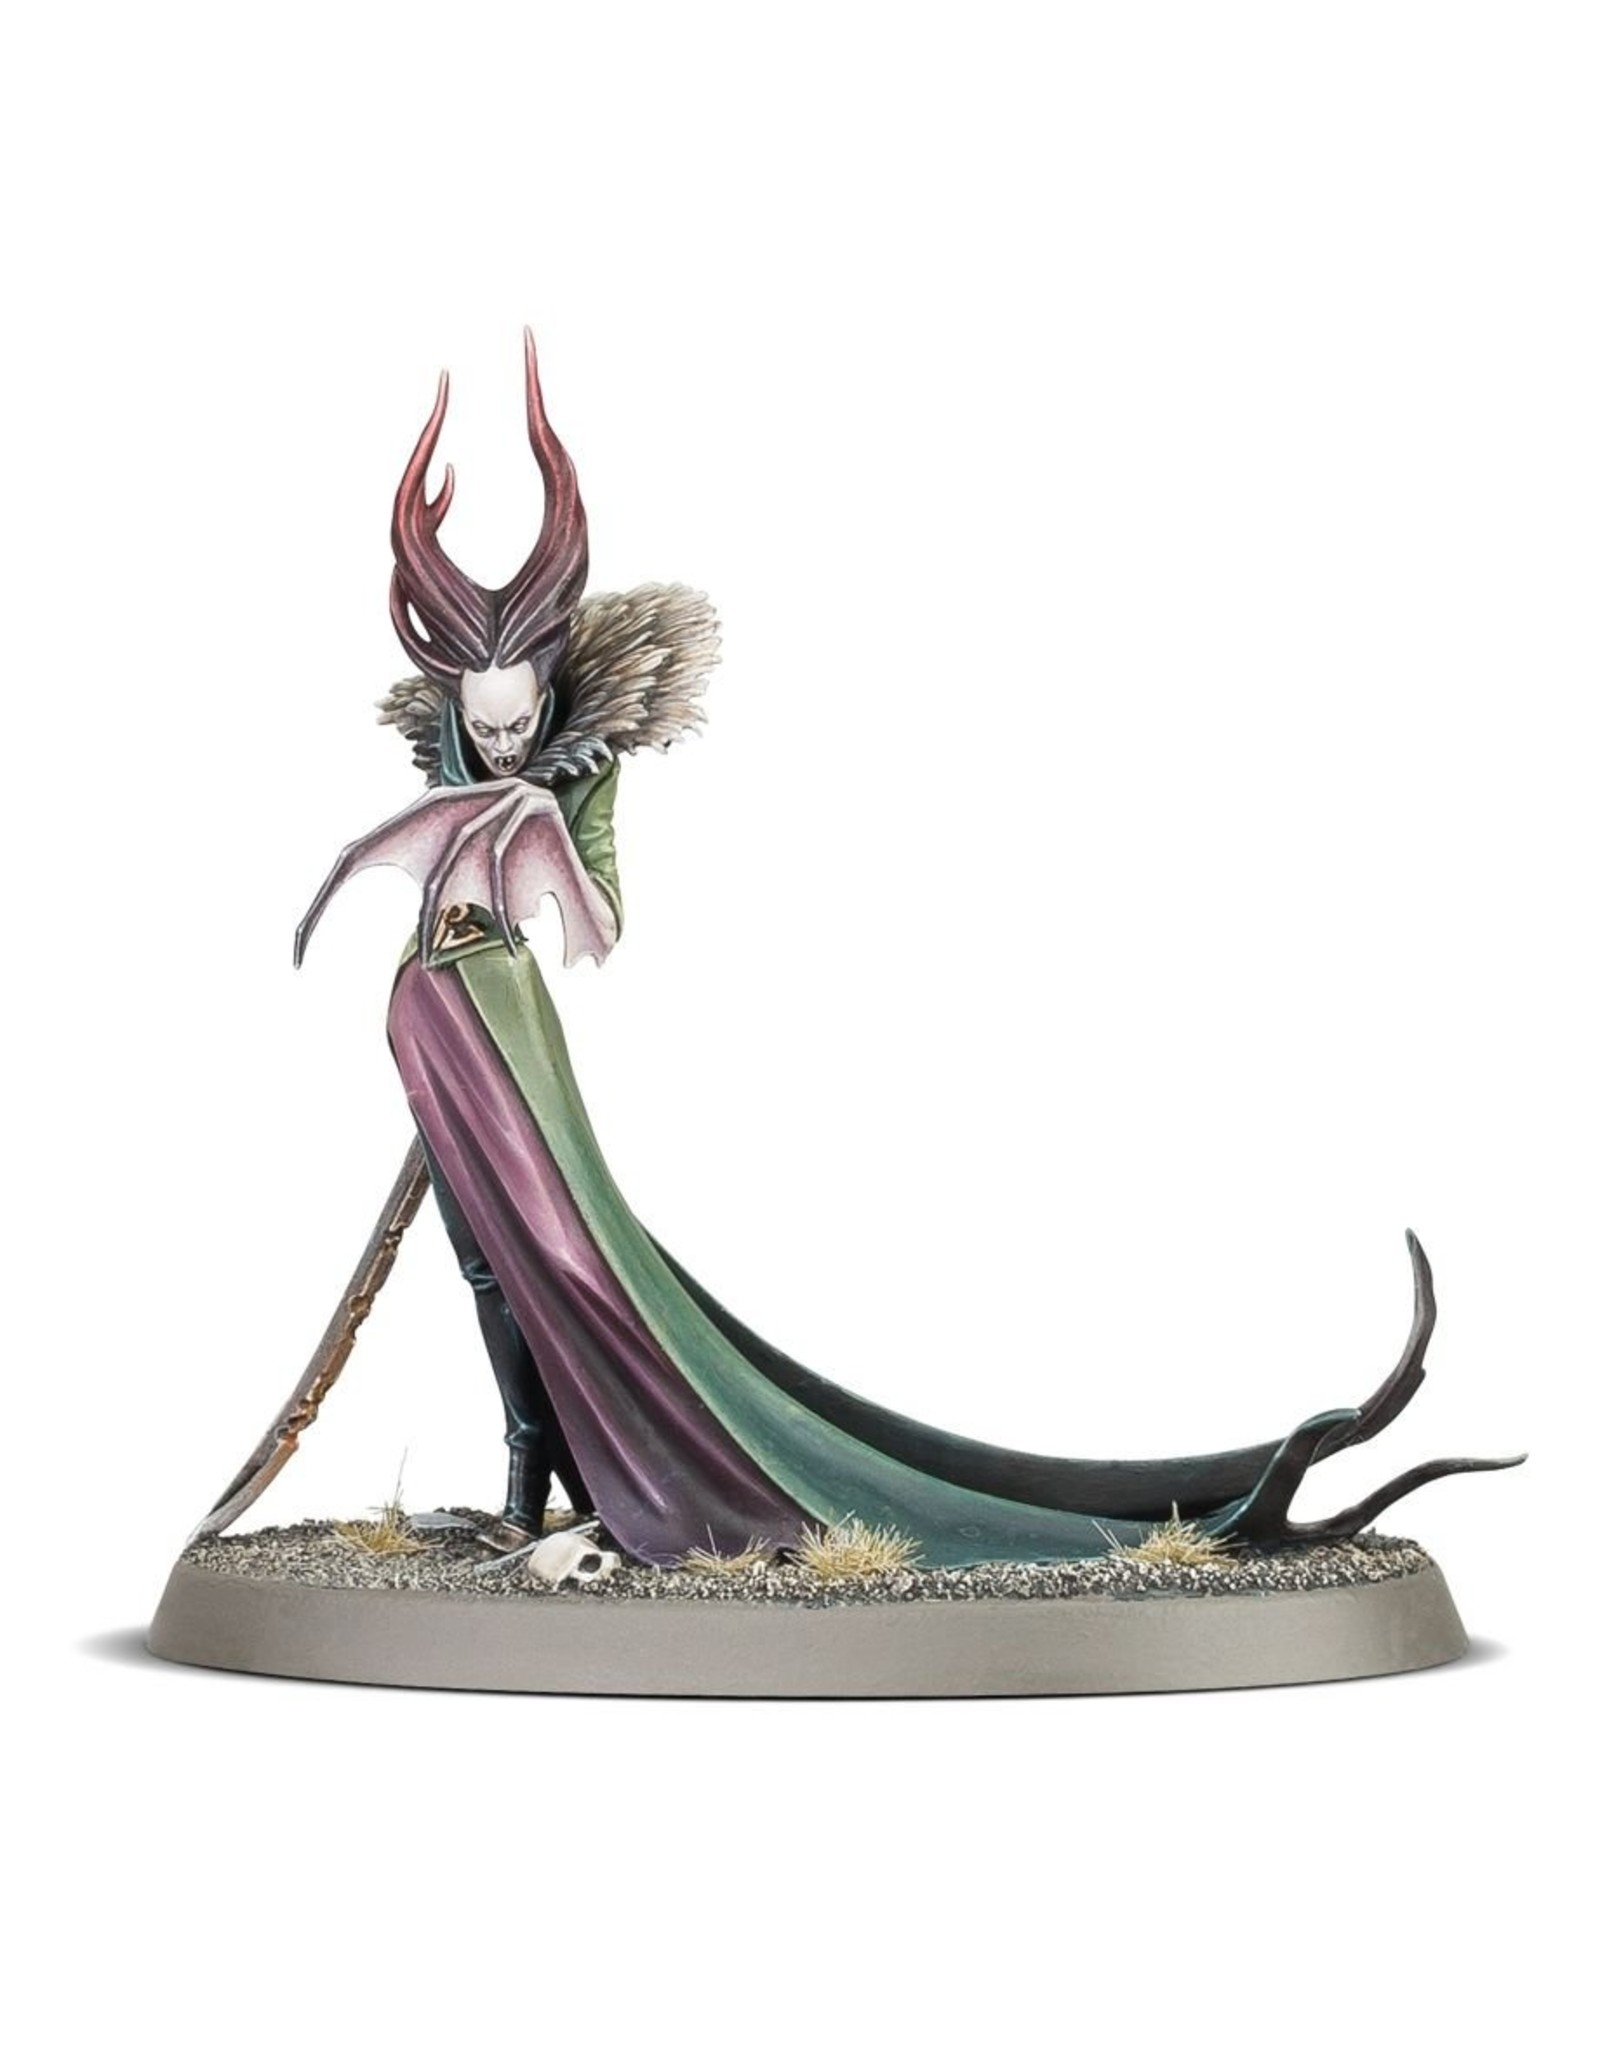 Games Workshop Soulblight Gravelords: Lady Annika the Thirsting Blade